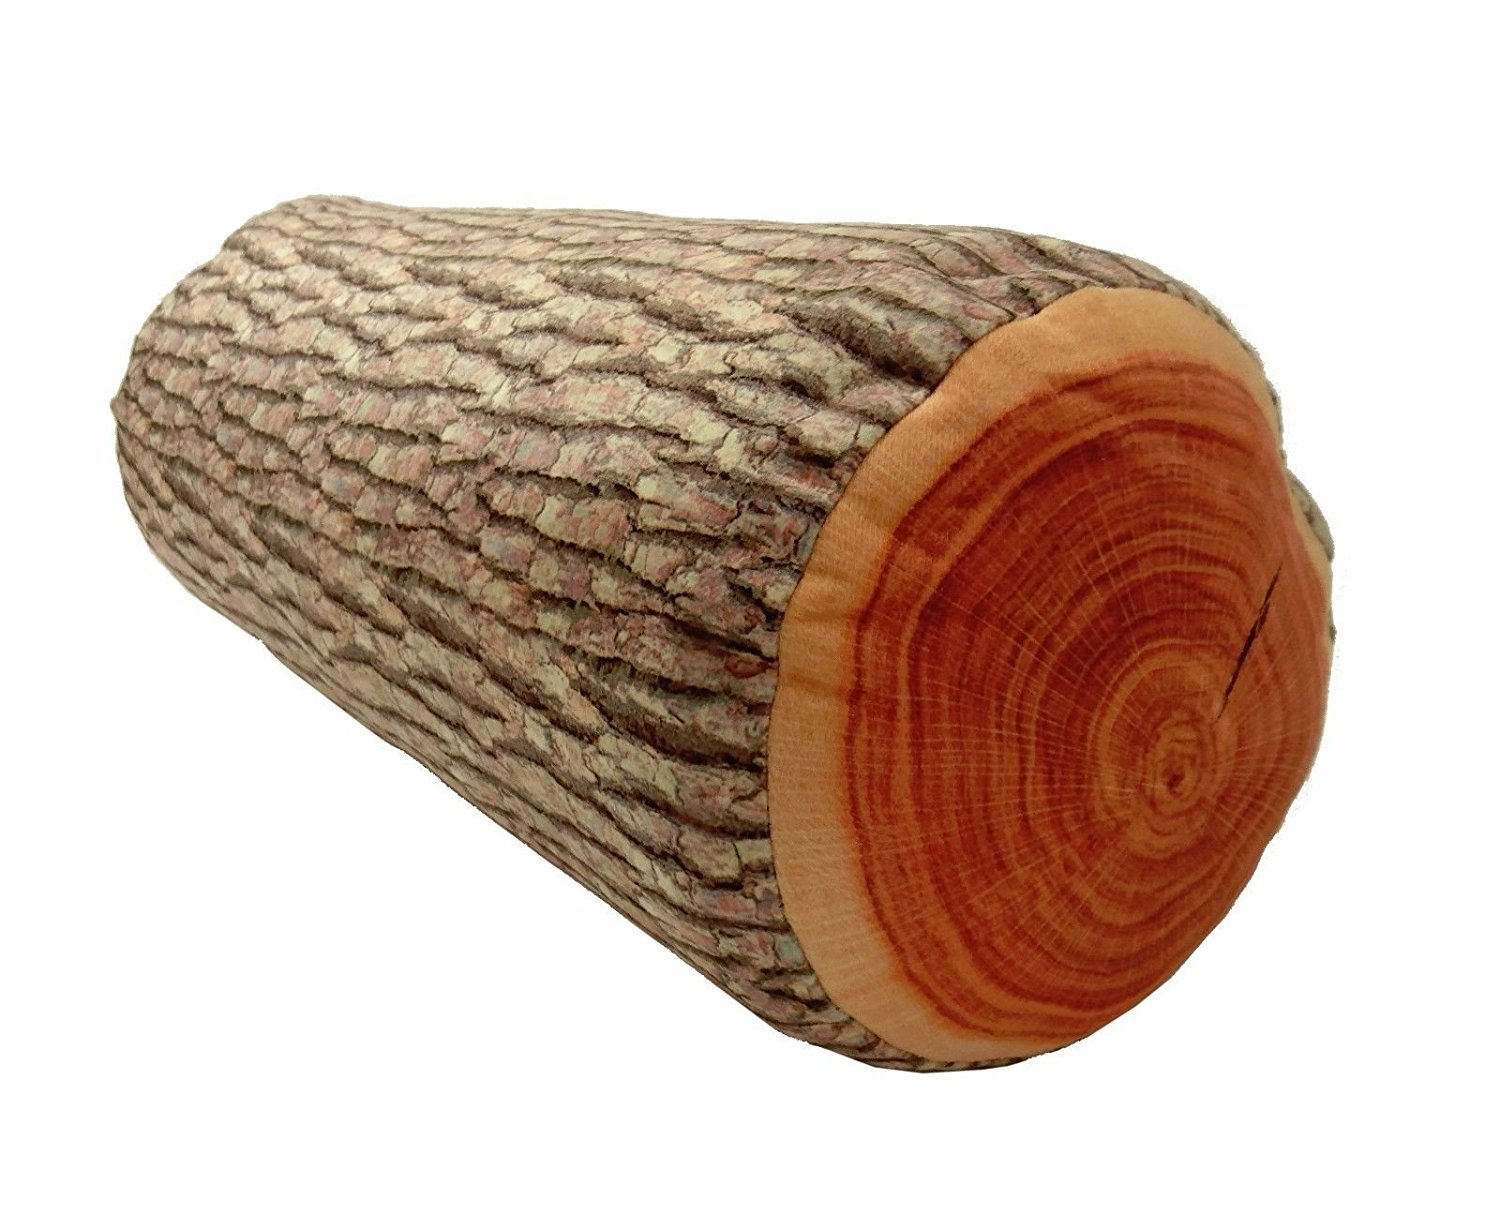 3D Wood Log Soft Cushion throw Pillow Stuffed Plush Home Decor KT00001 ~ We Pay Your Sales Tax -  - living-room-soft-furnishings, living-room, decorative-pillows - 71nNGIaX%2B8L -